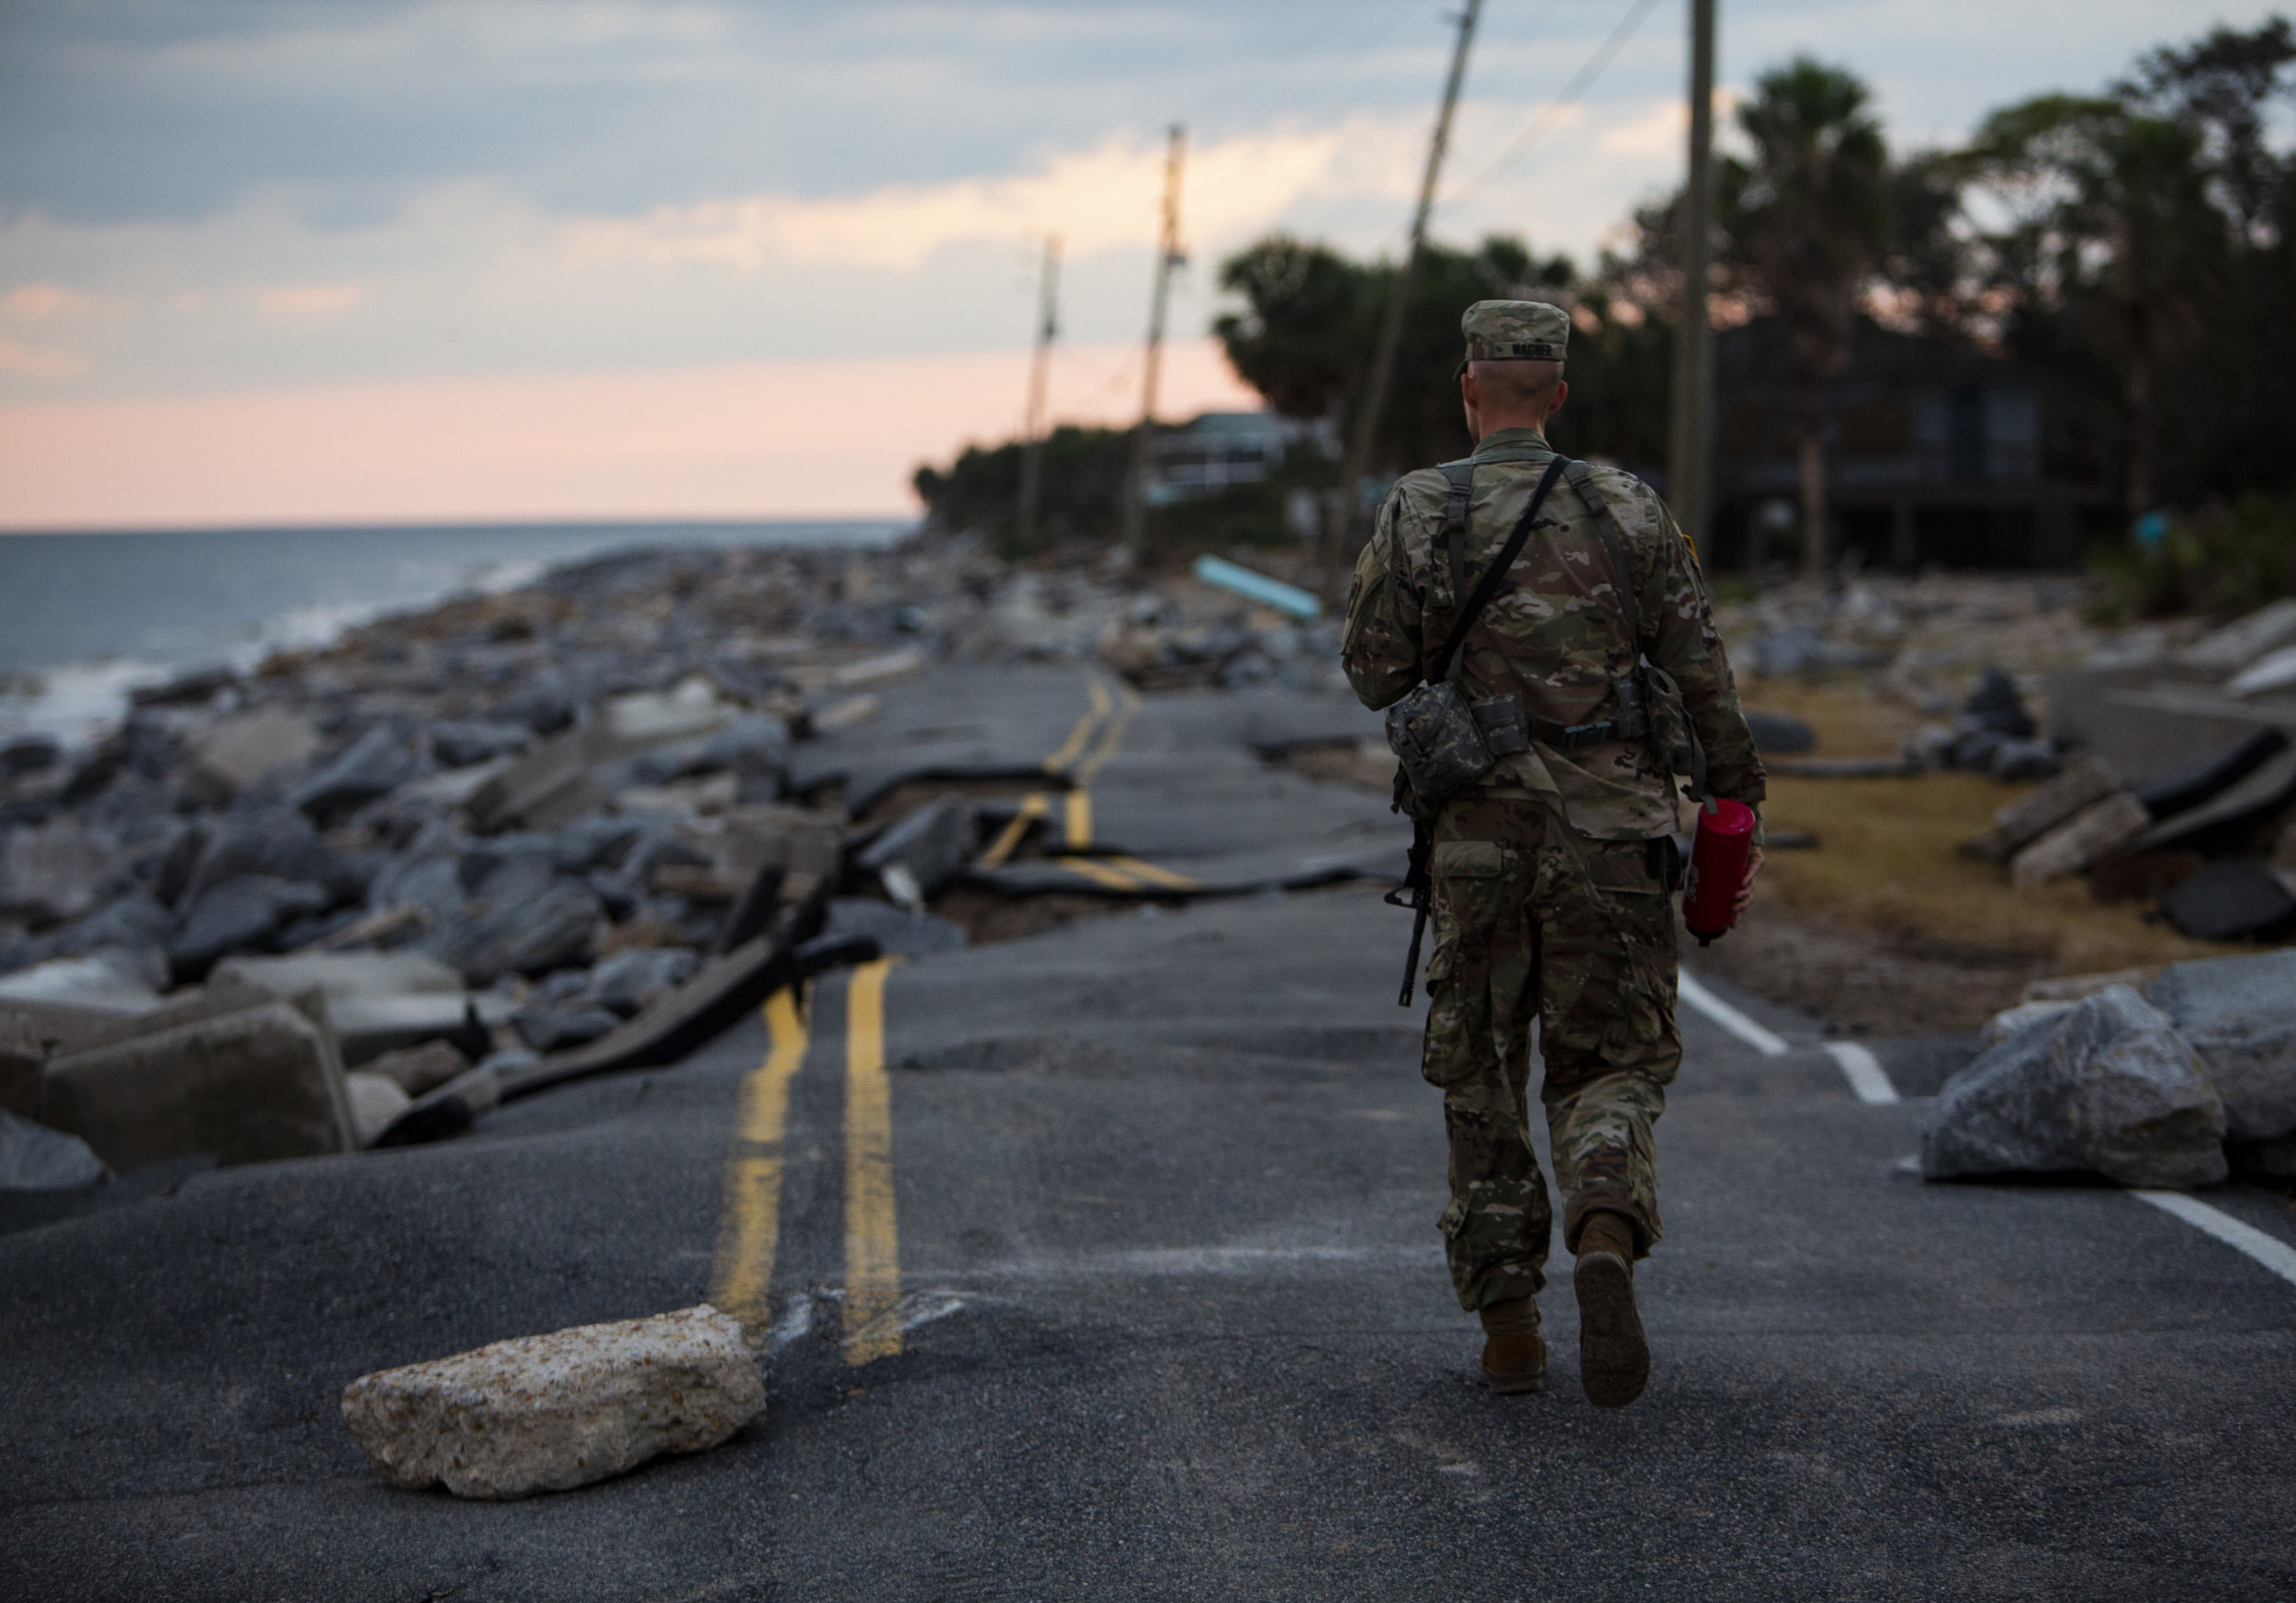 Florida Army National Guard Lt. Matt Wagner walks along what is left of Alligator Drive in Alligator Point on October 11, 2018, one day after Hurricane Michael hit the area. The National Guard descended on the area around 4 p.m..